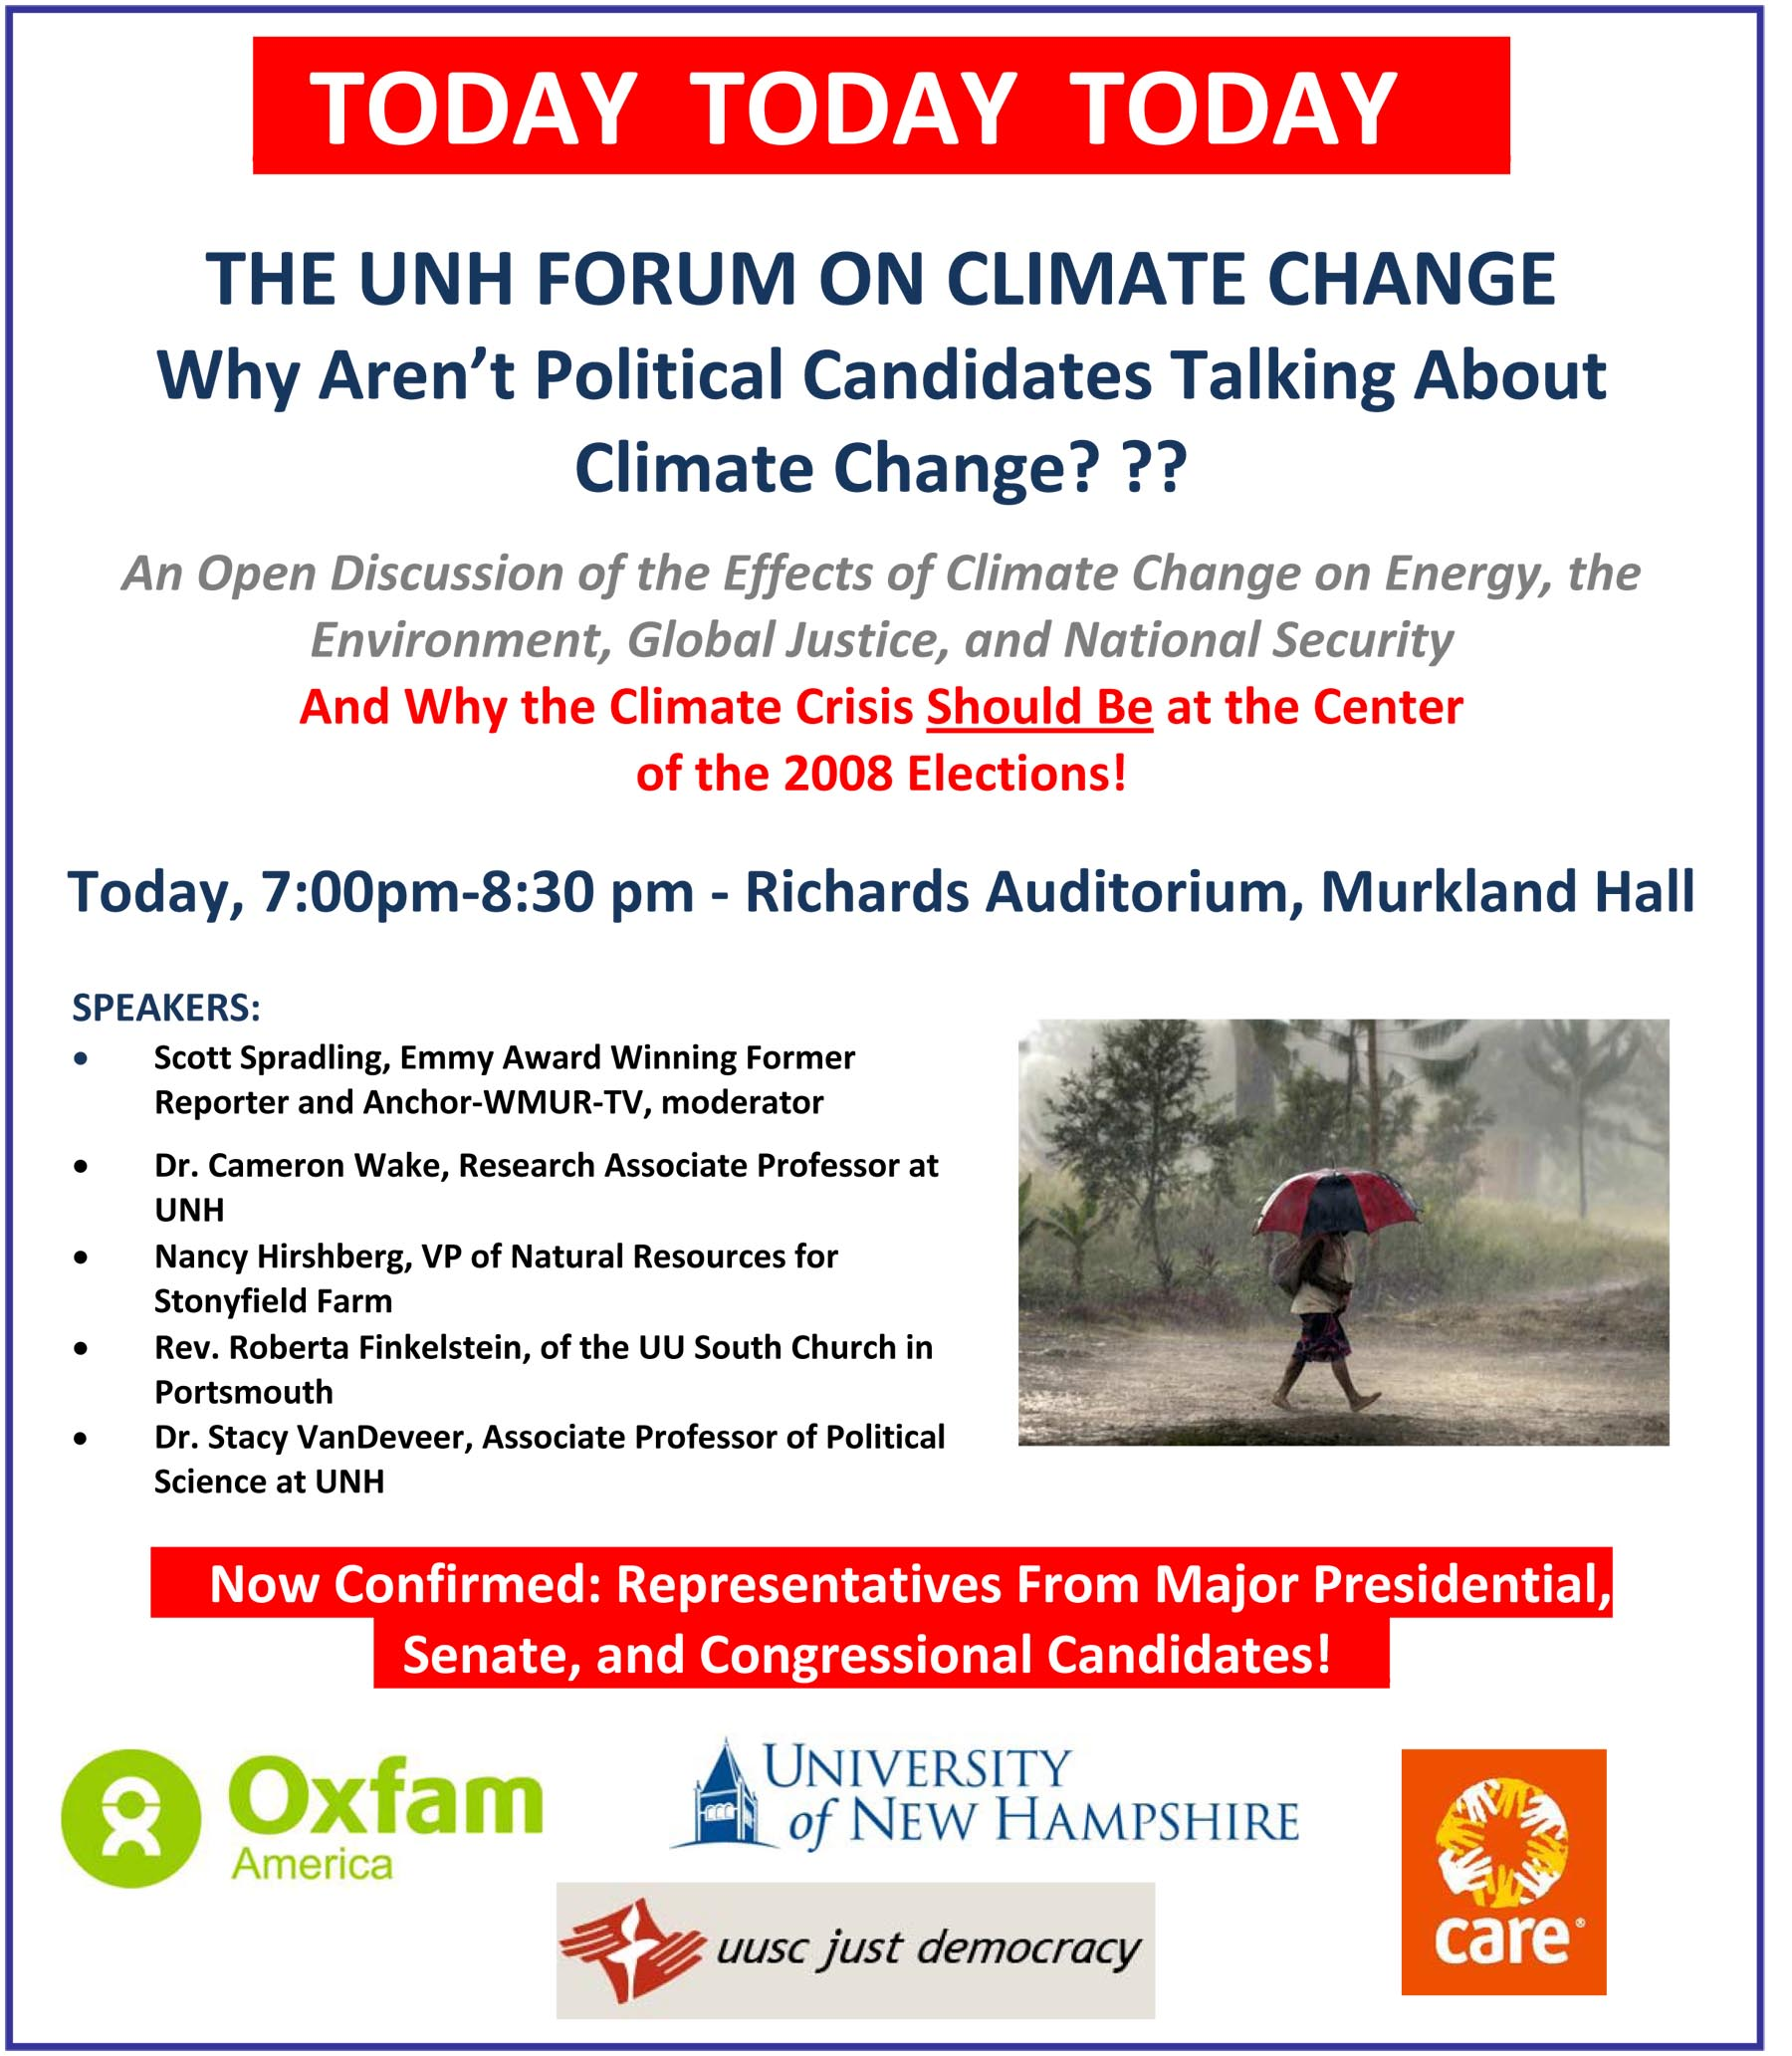 THE UNH FORUM ON CLIMATE CHANGE